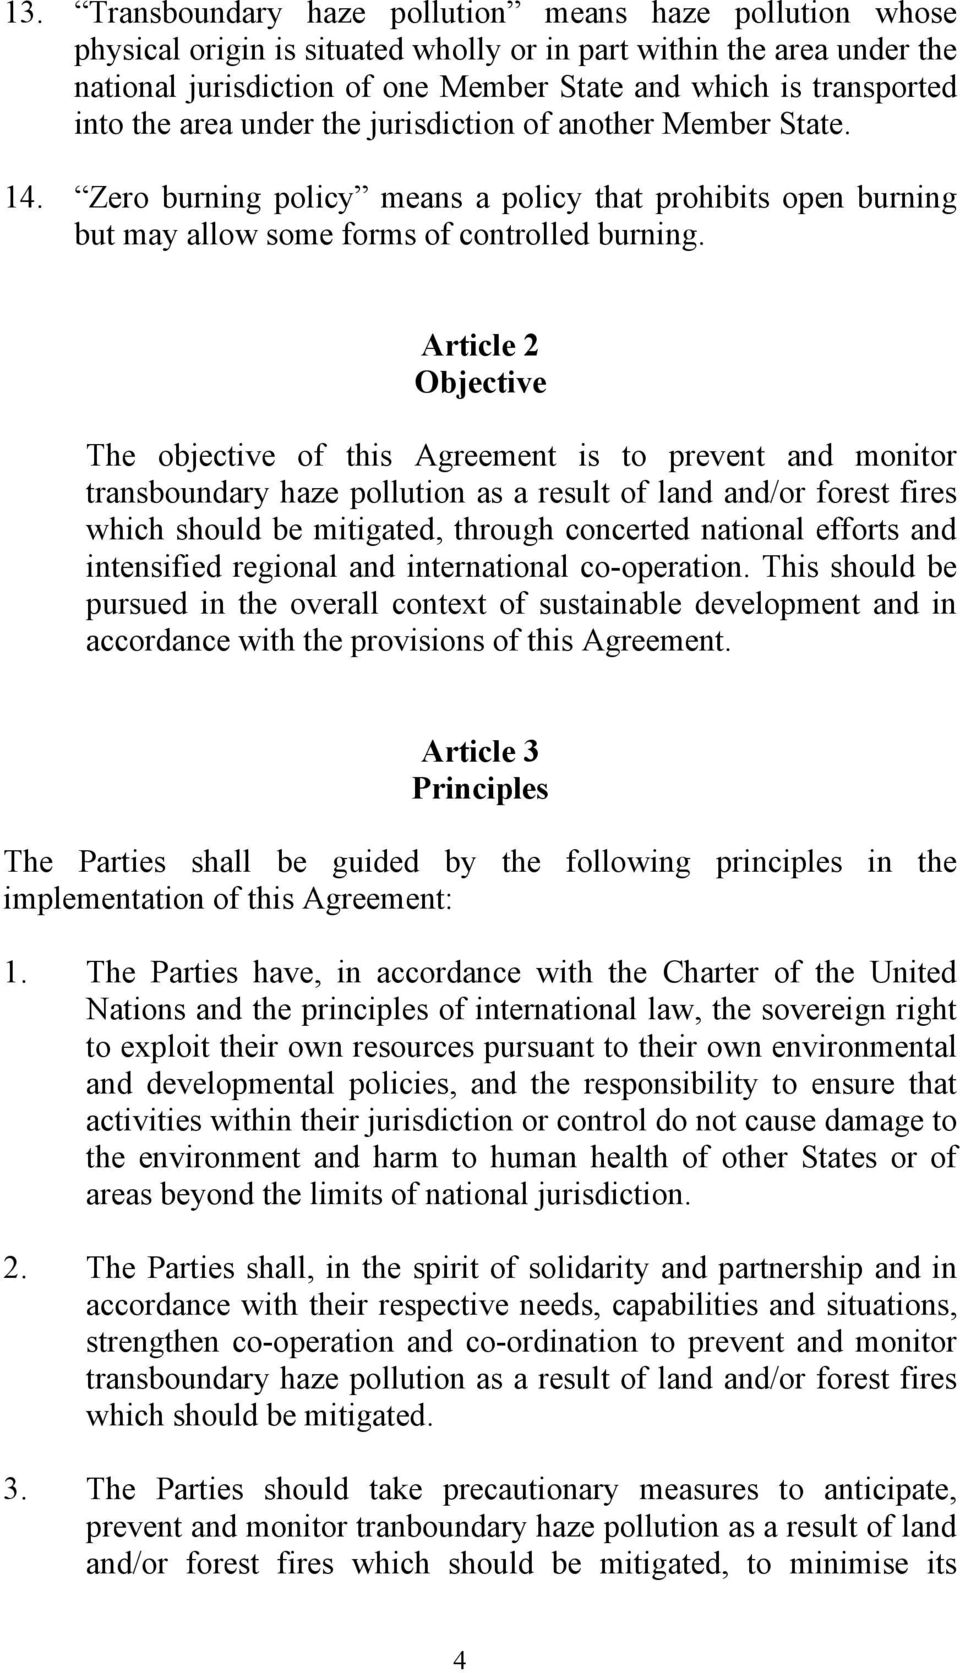 Article 2 Objective The objective of this Agreement is to prevent and monitor transboundary haze pollution as a result of land and/or forest fires which should be mitigated, through concerted